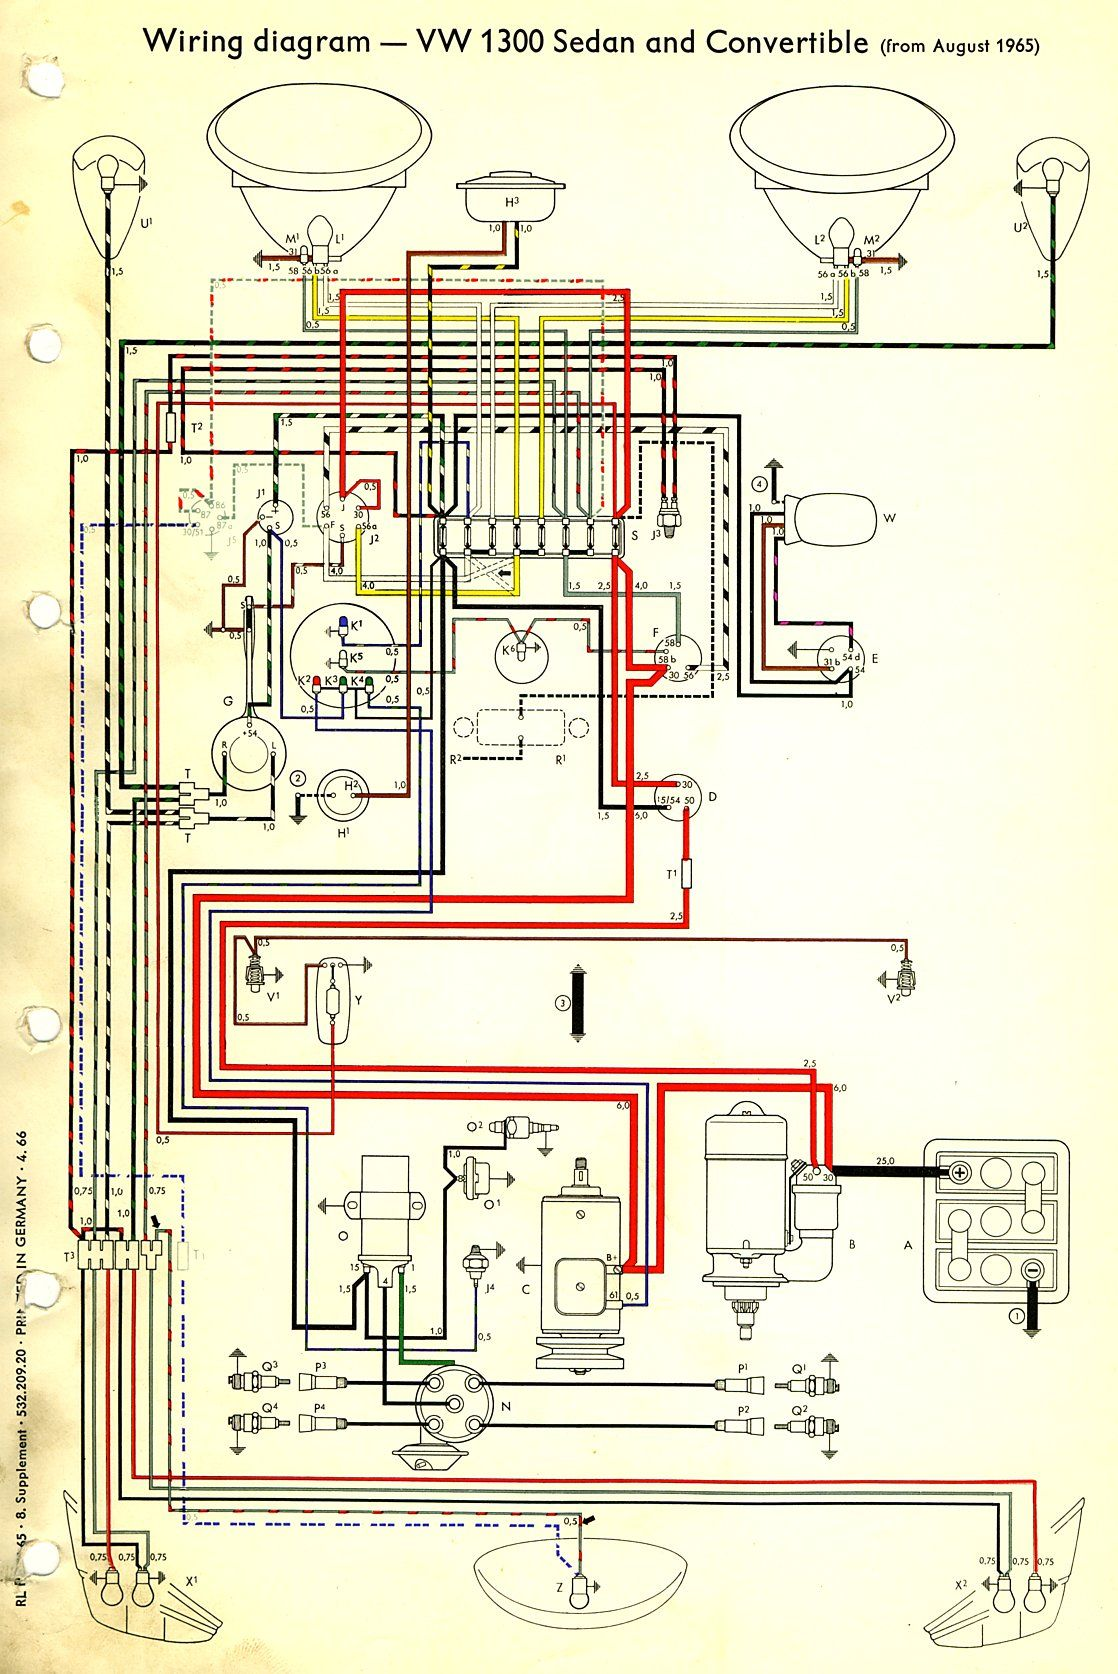 1966 Beetle Wiring Diagram Thegoldenbug Com Vw Beetles Vw Bug Vw Dune Buggy